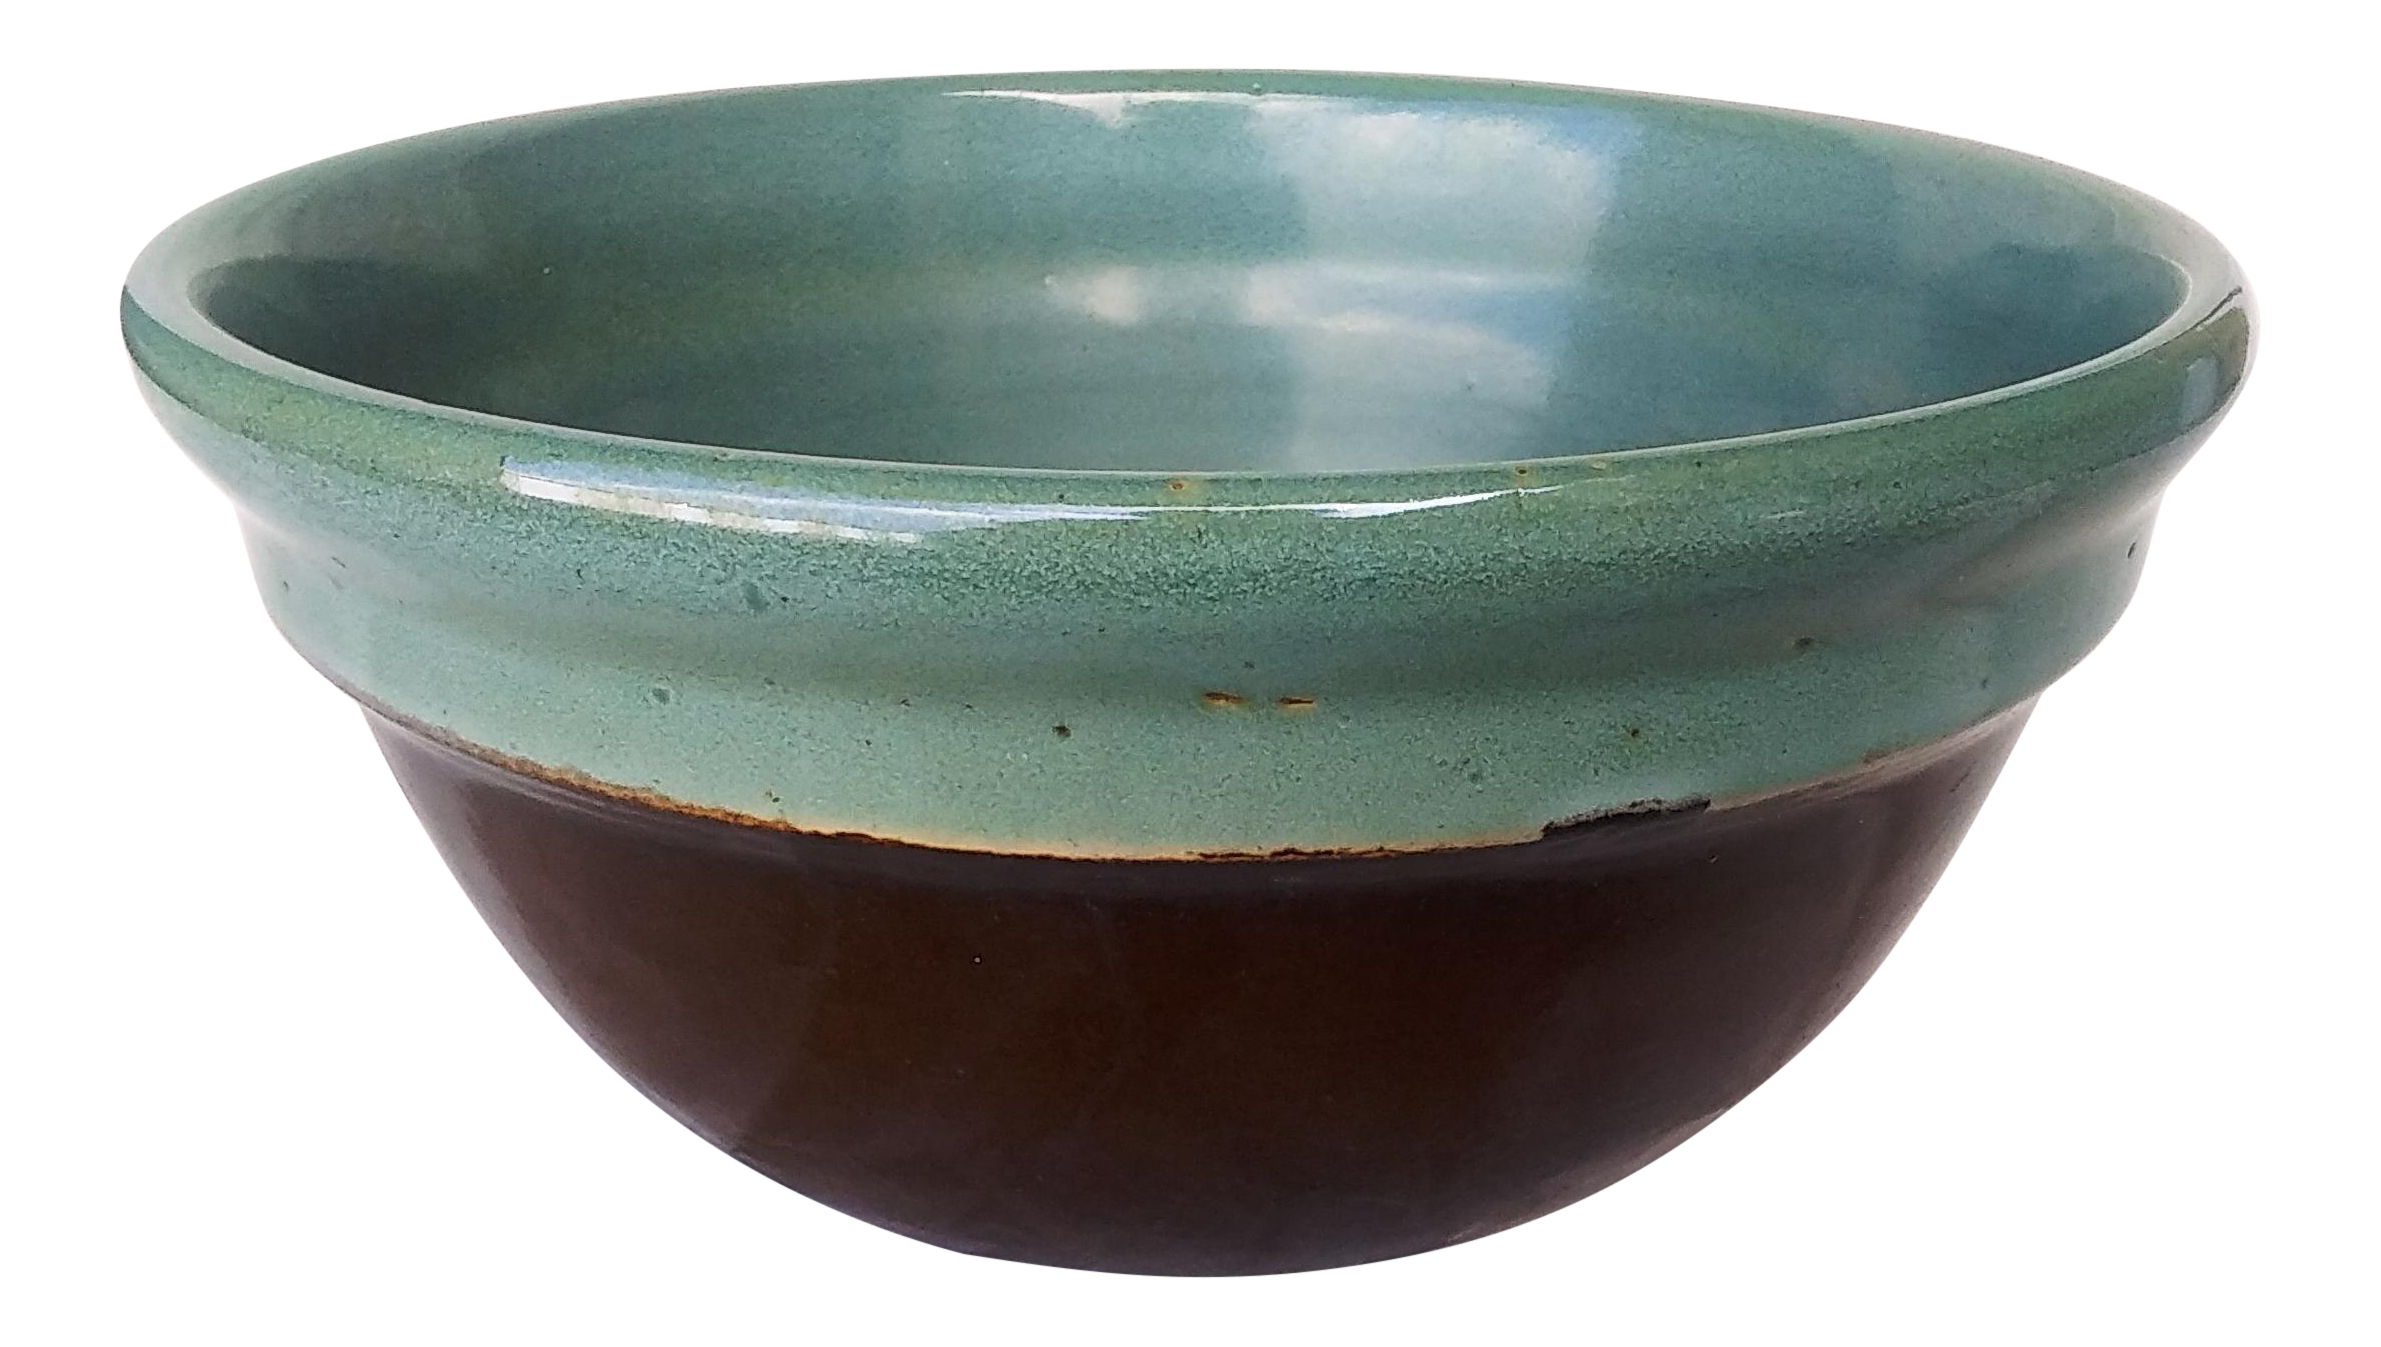 Red wing pottery 8 mixing bowl teal green brown chairish reviewsmspy